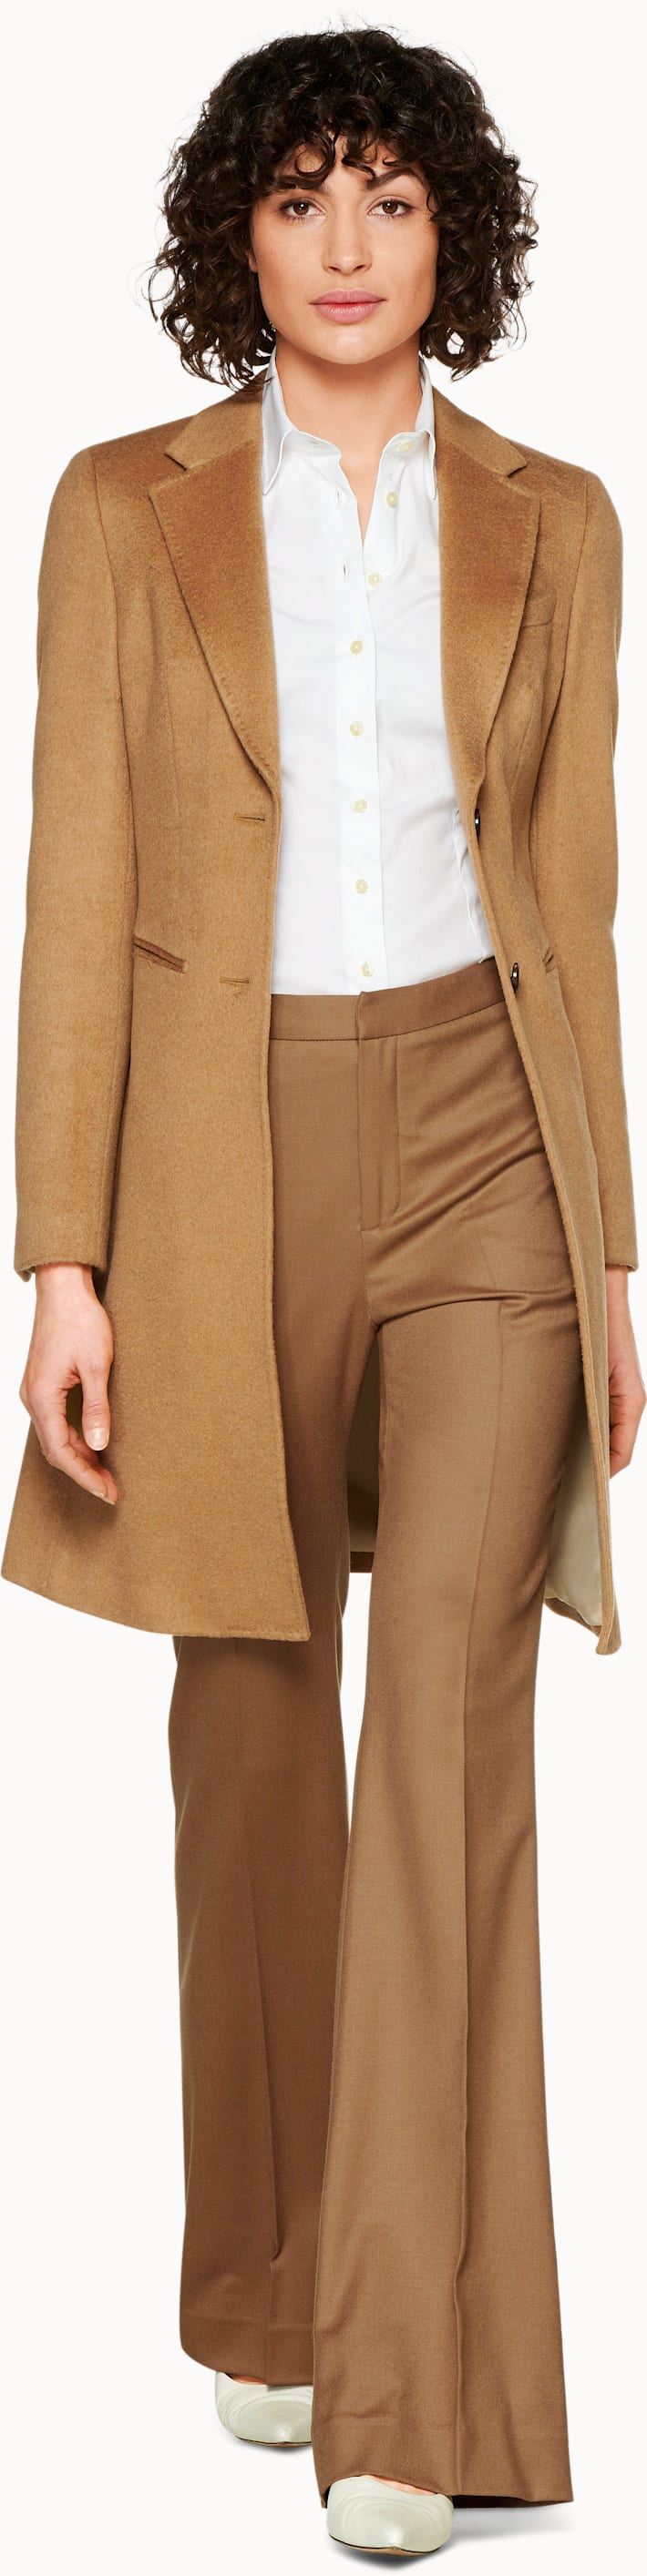 Lauren Camel  Coat